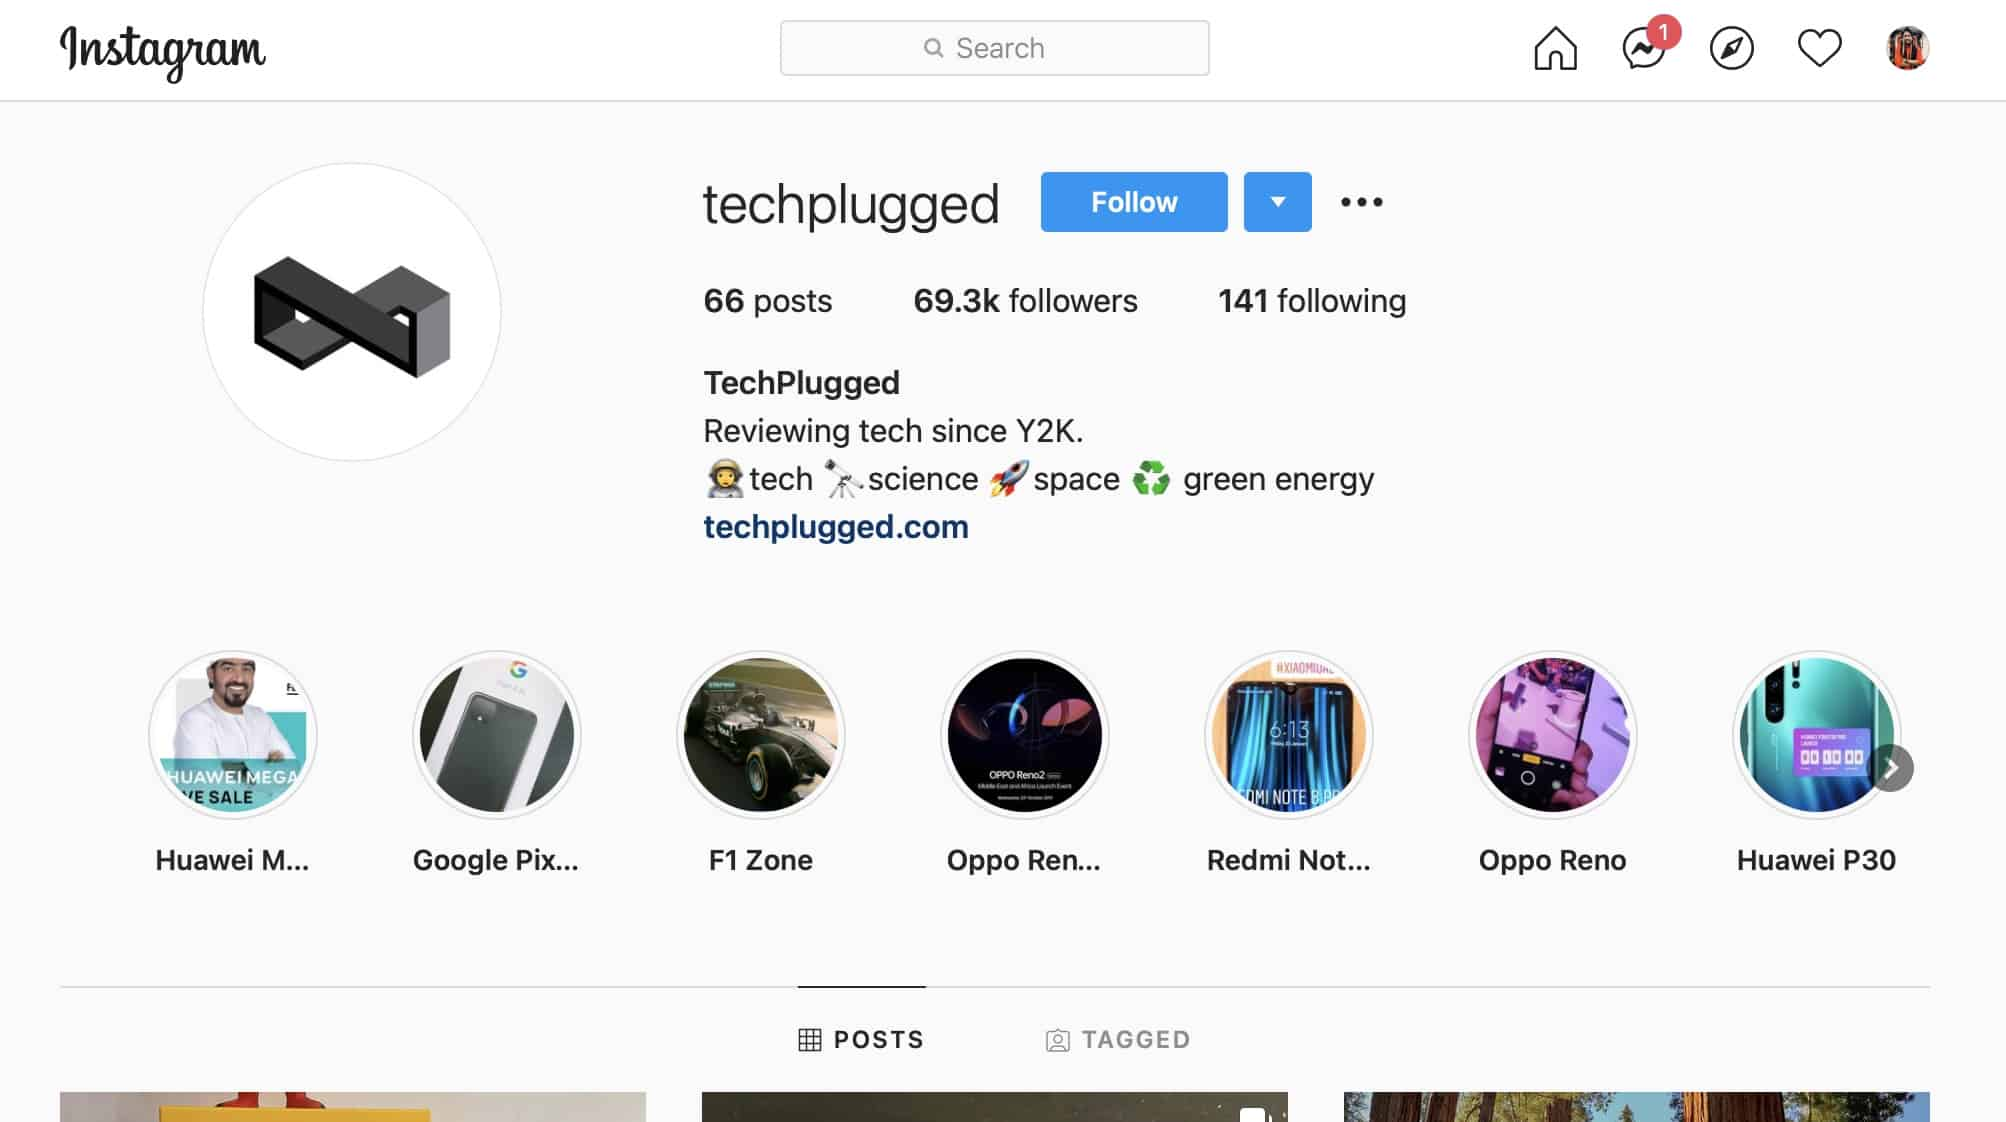 How to upload to Instagram using the Mac